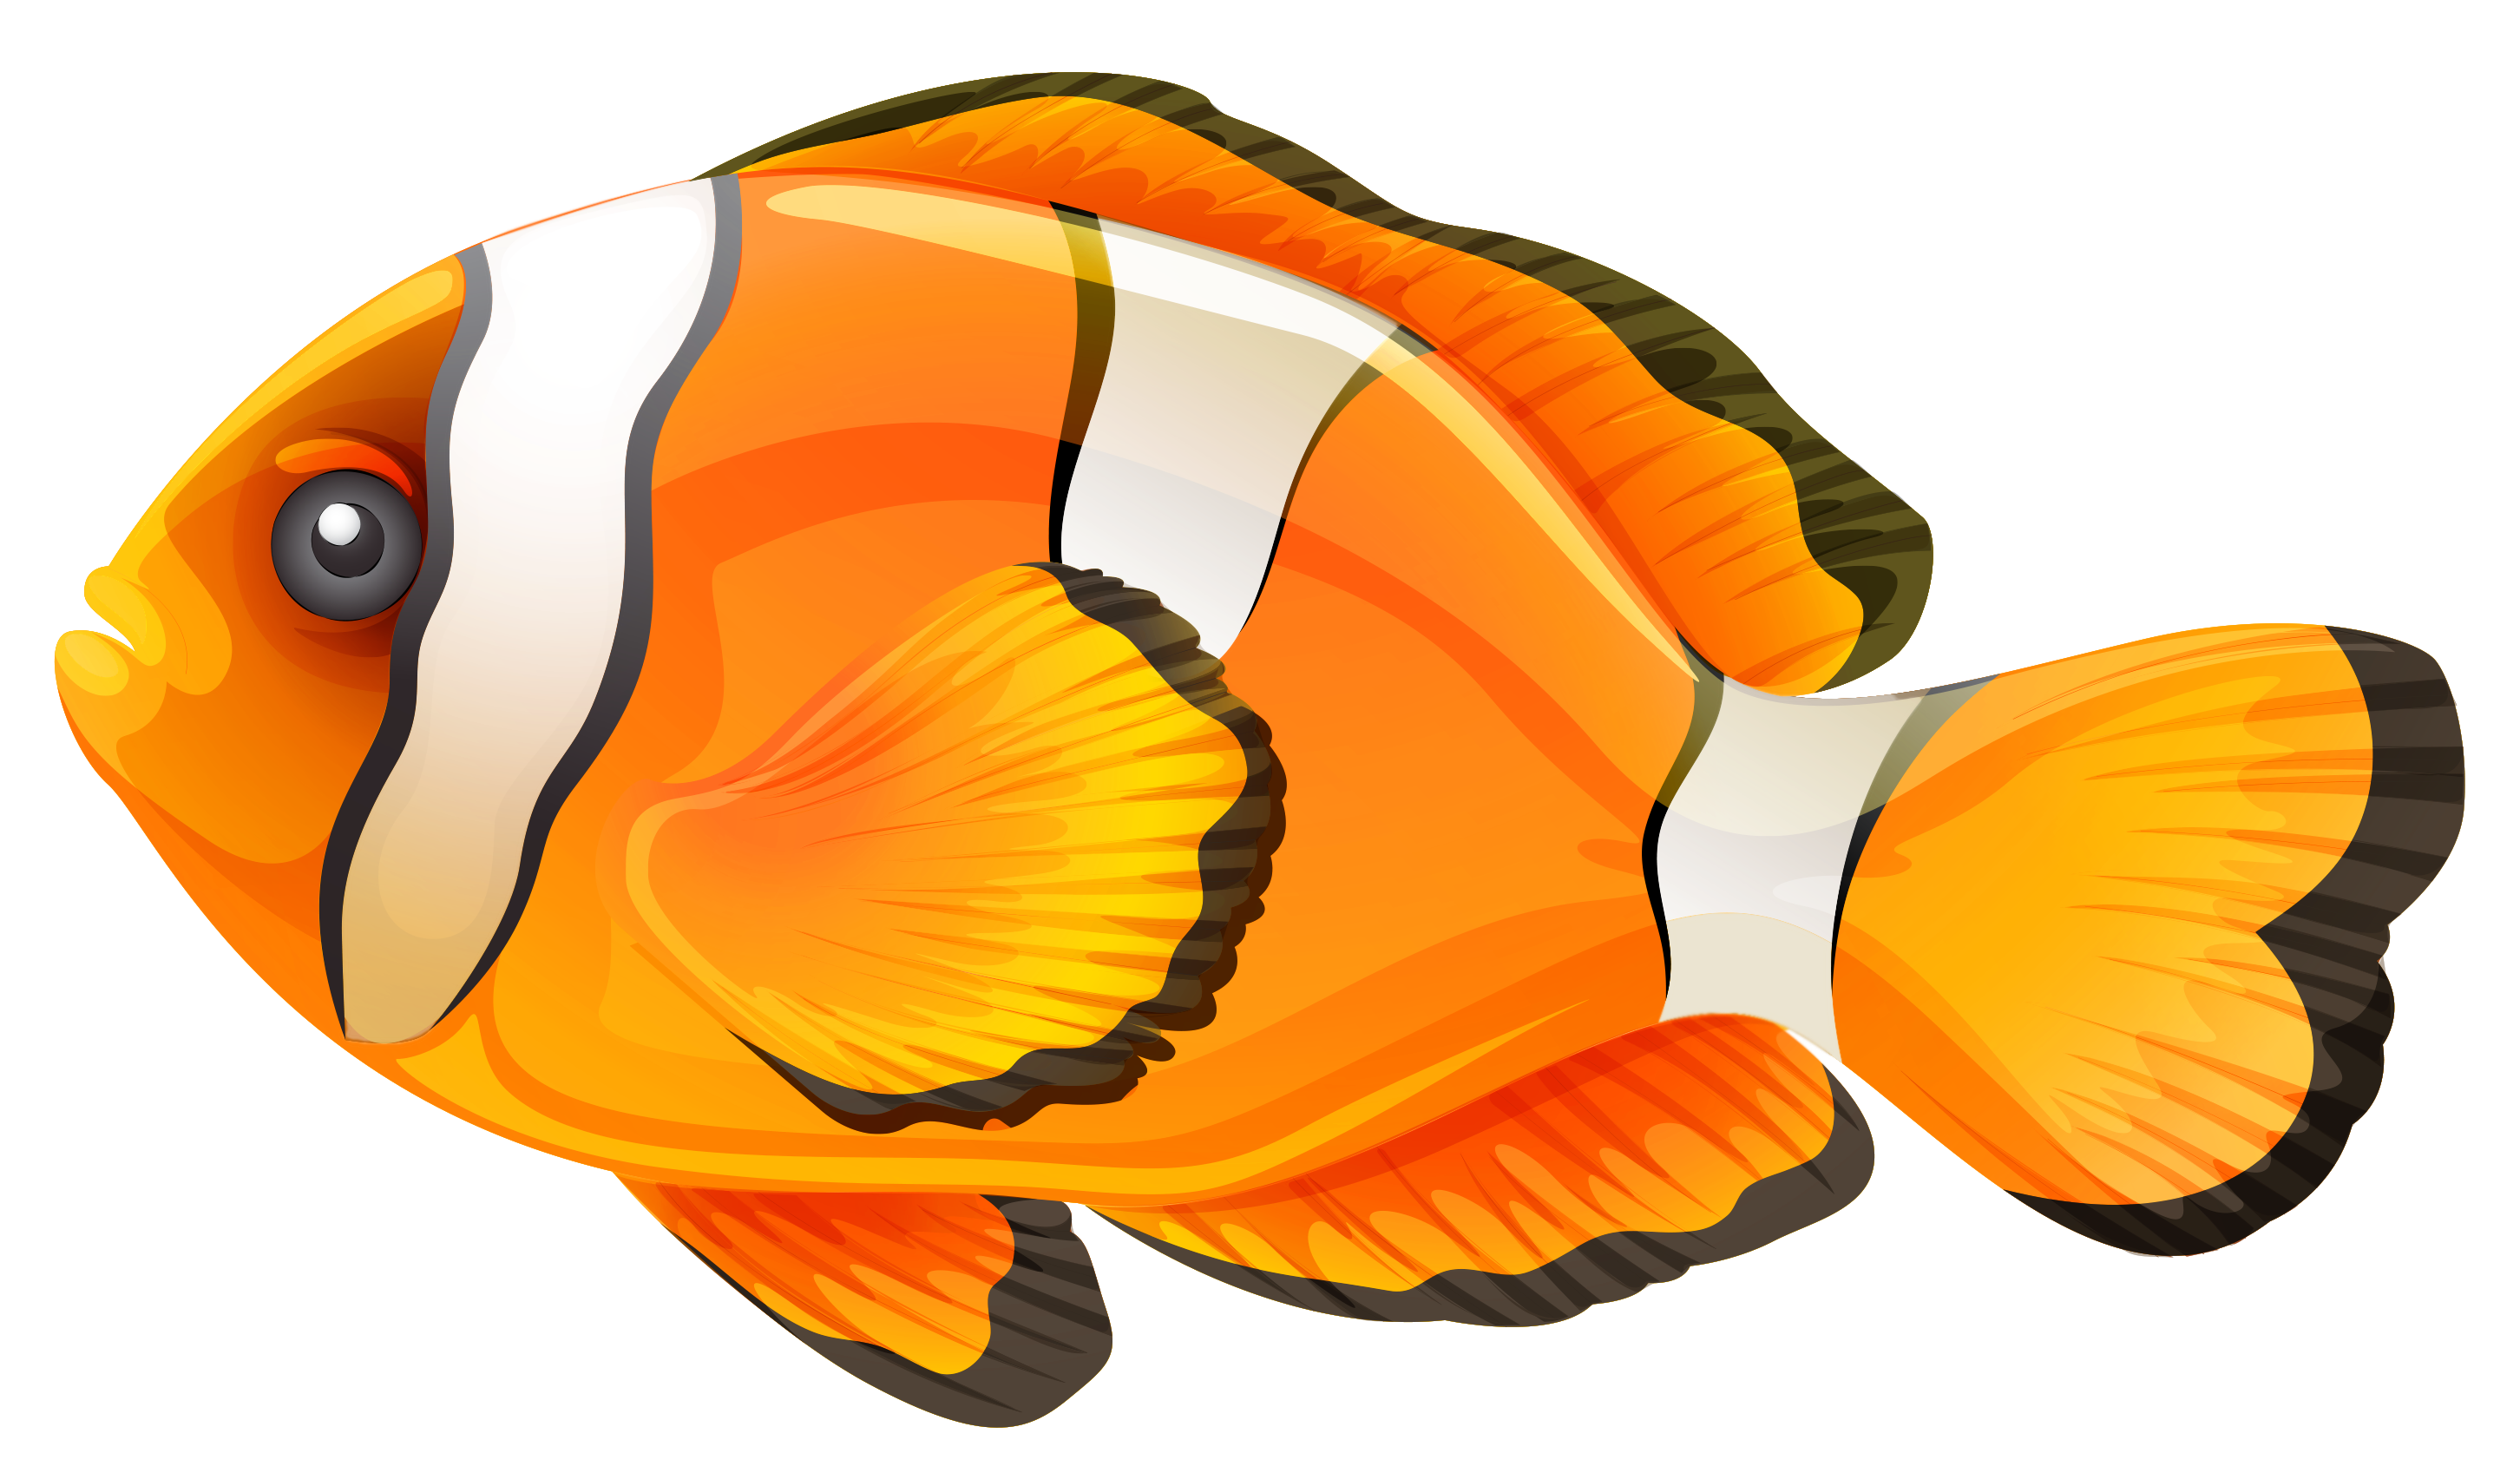 Fish png. Download free transparent image